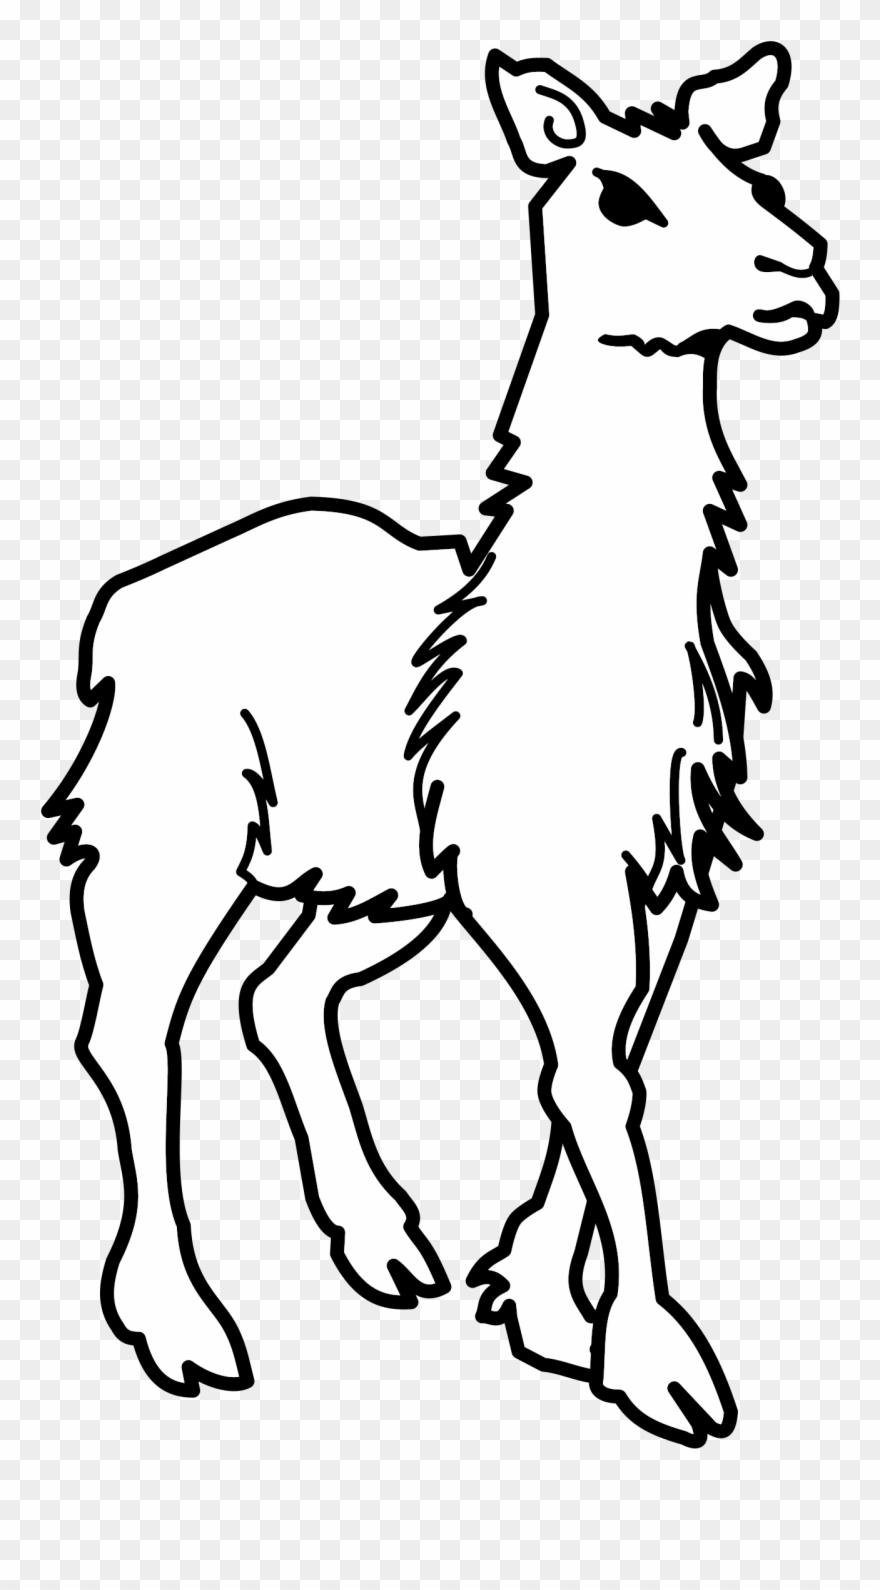 Llama Alpaca Evolution Drawing Computer Icons.